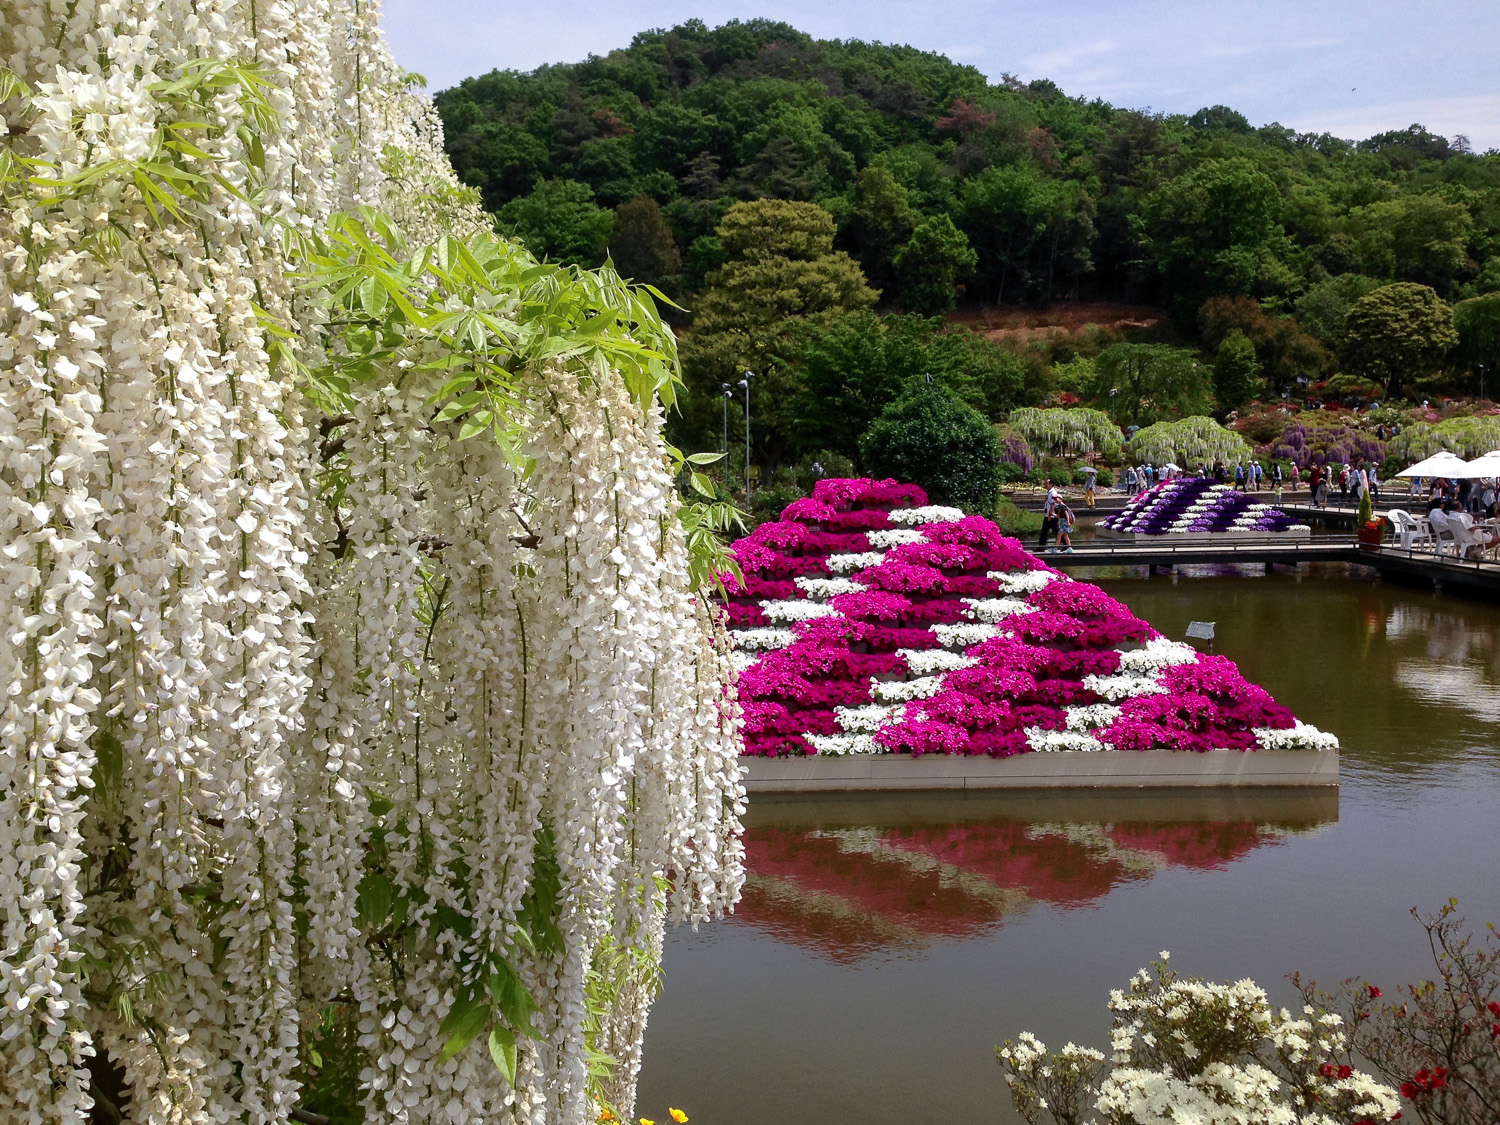 There are colourful displays of flowers throughout the park. Image:  © David Astley